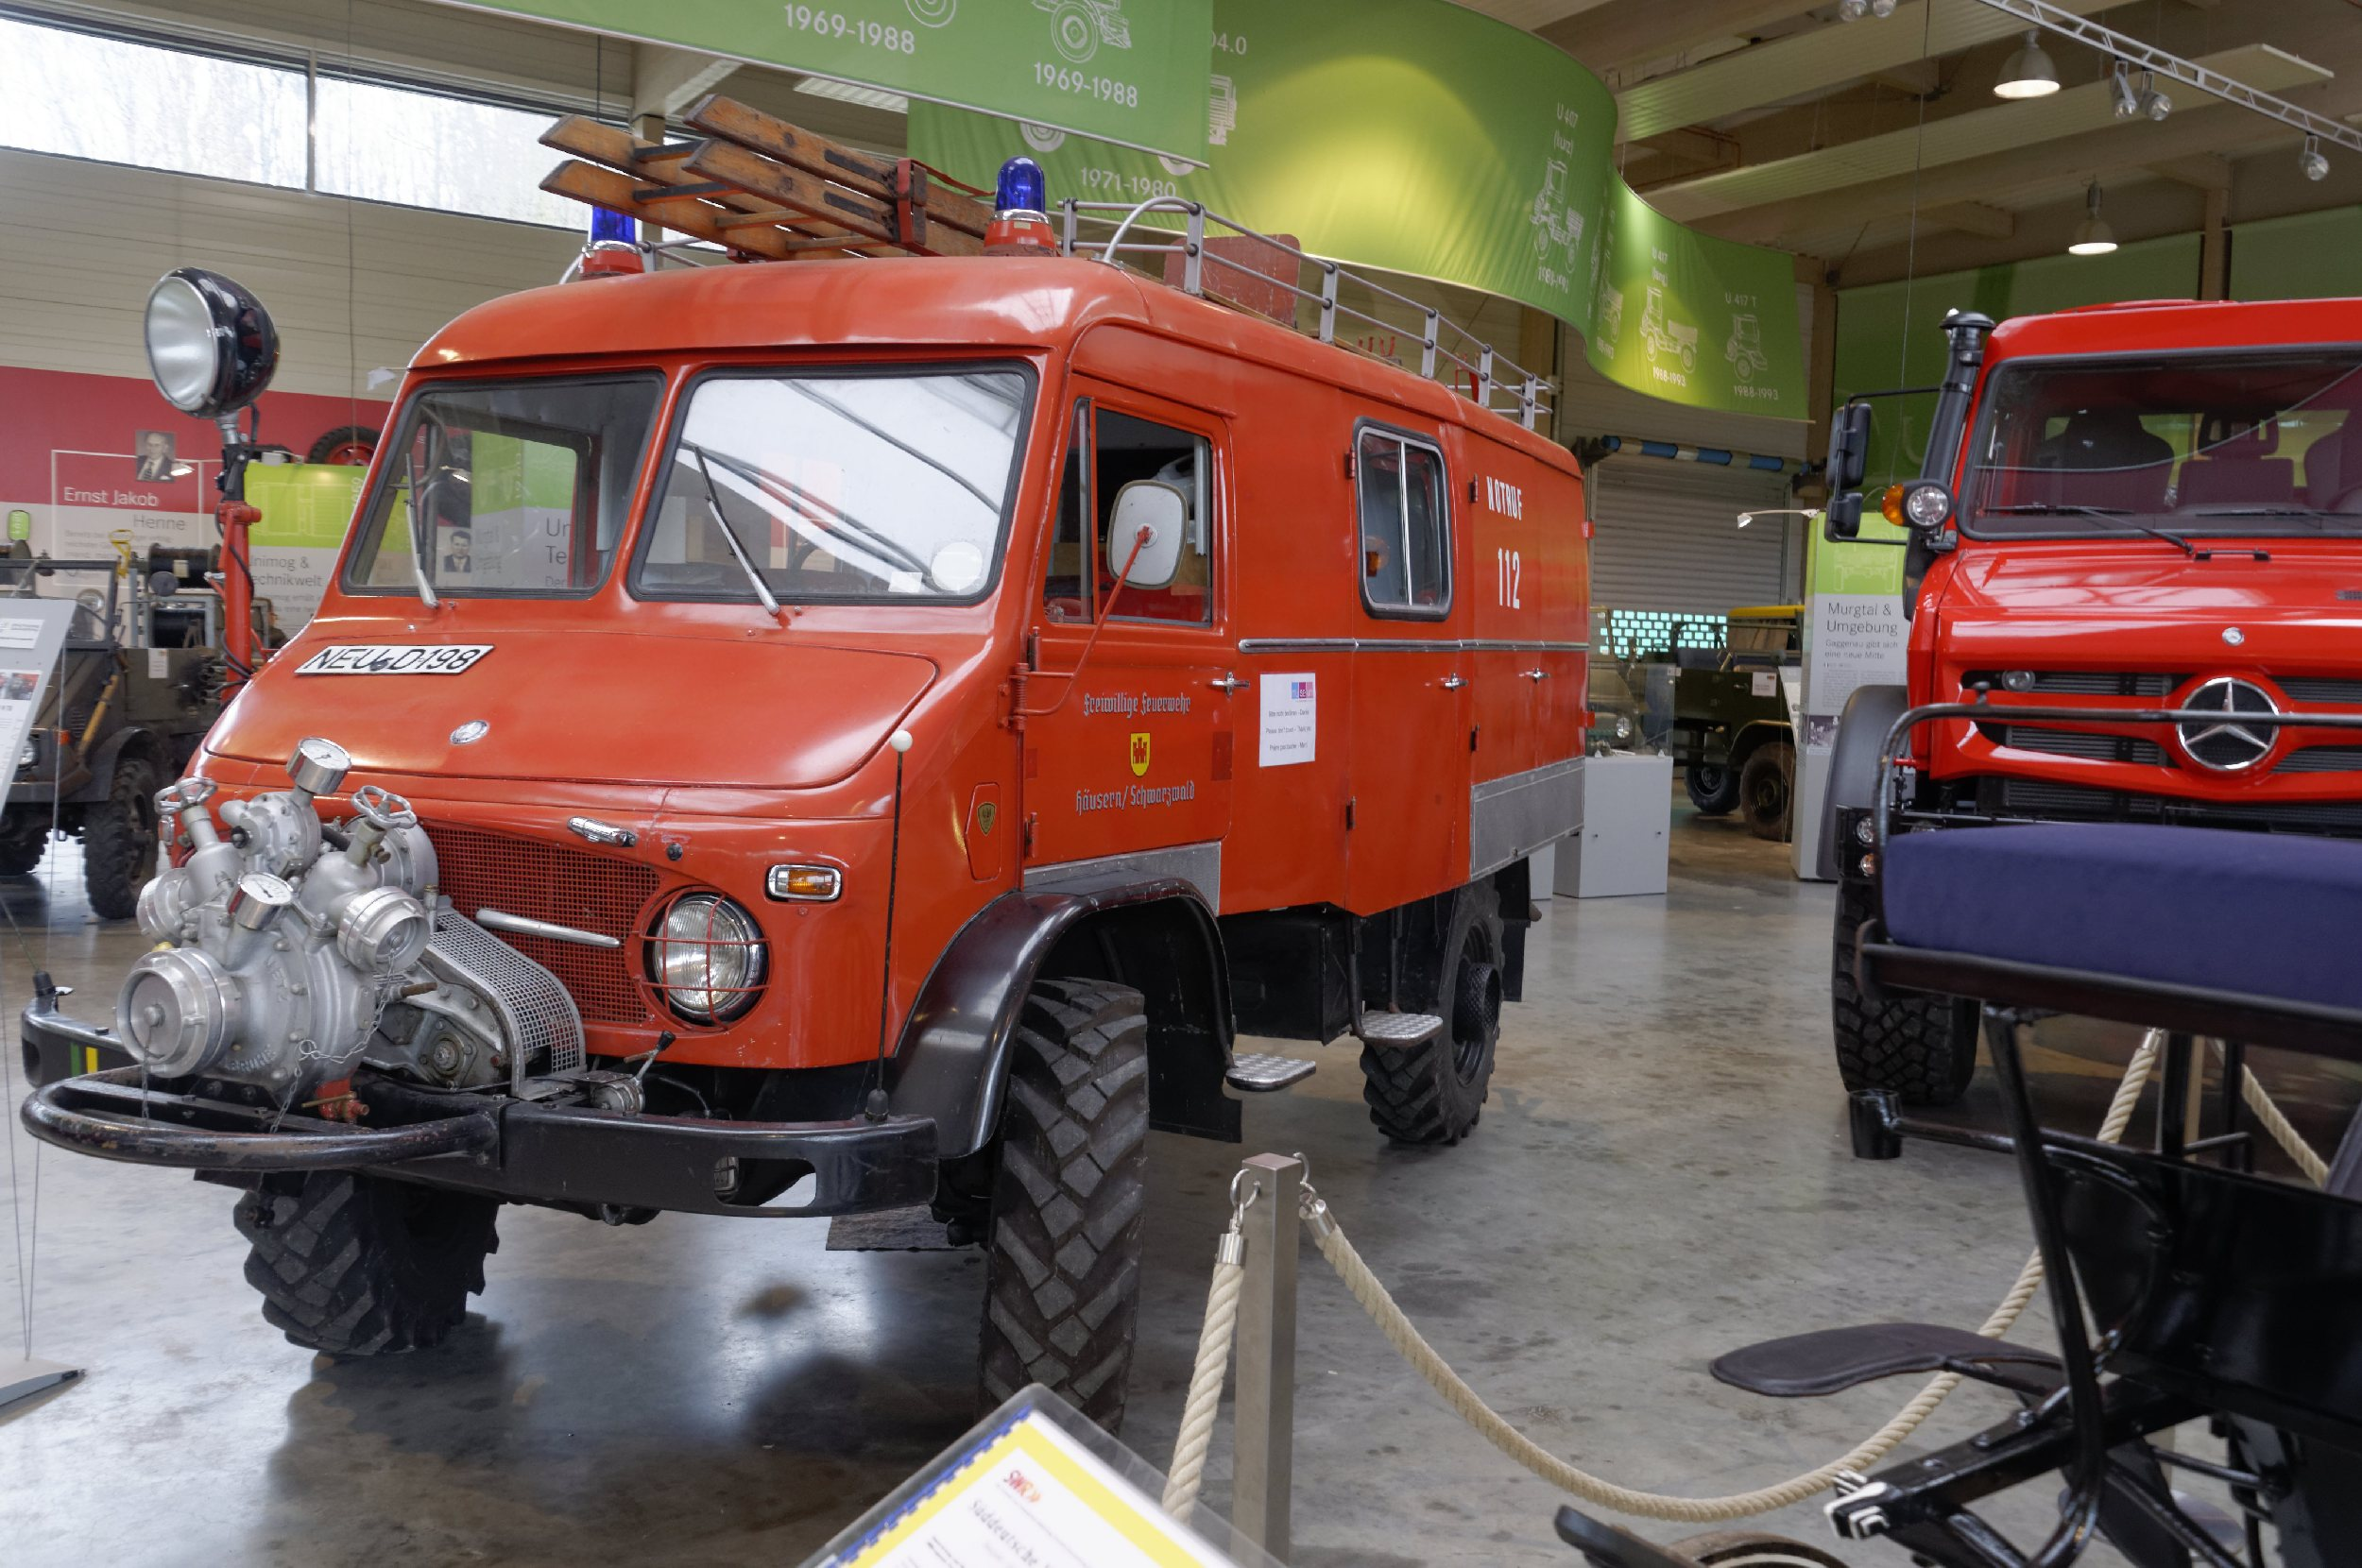 Gaggenau_2016_ Unimog Museum _by RaBoe_099 unimog 404 wikipedia unimog 404 wiring diagram at mifinder.co